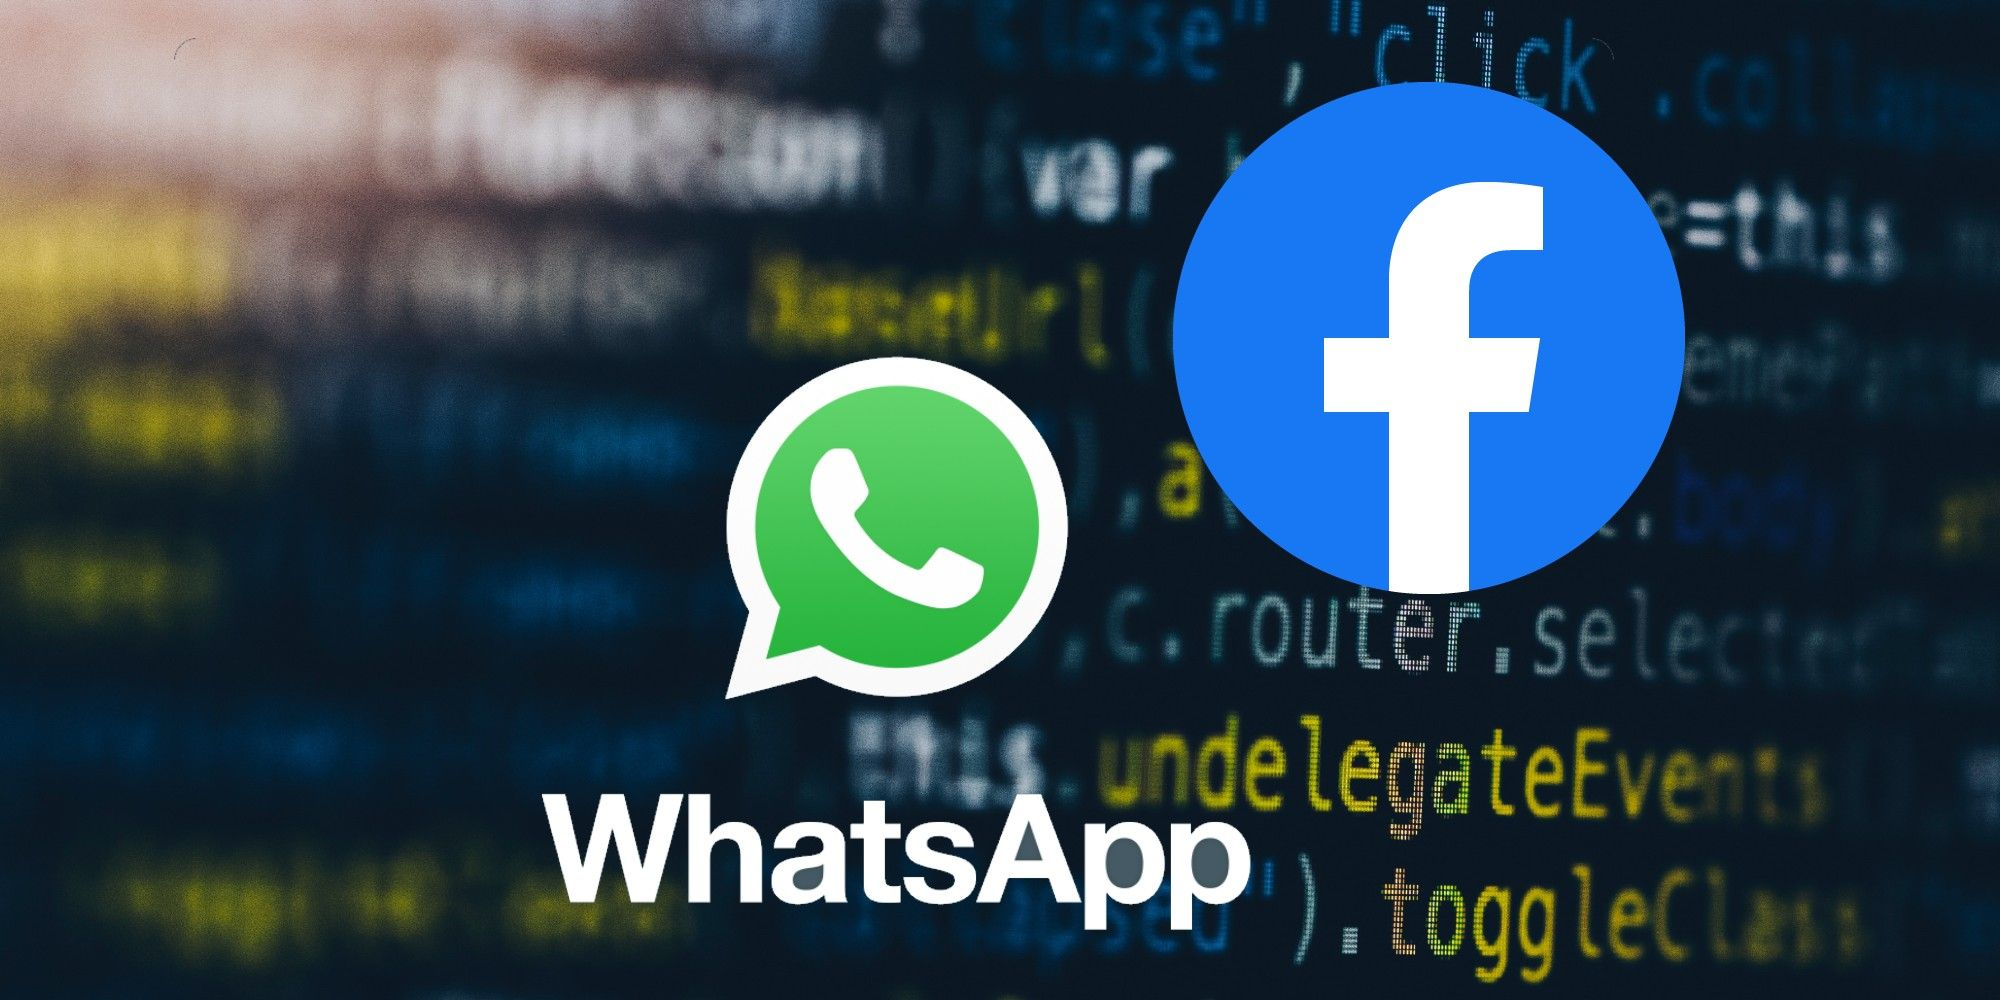 WhatsApp Removing Option To Stop Facebook Accessing Account Data